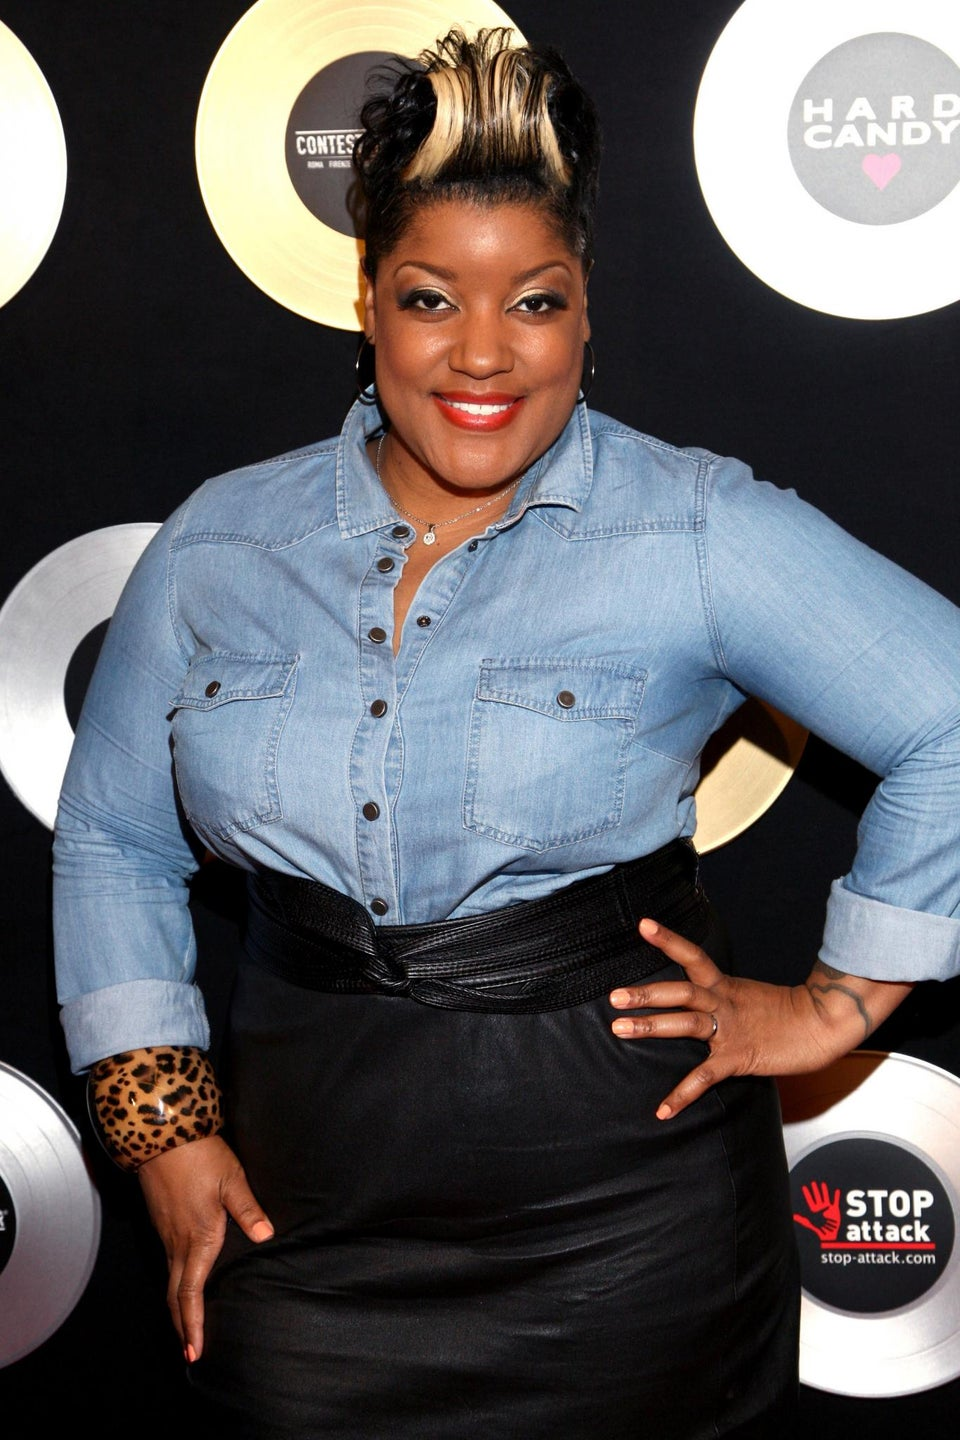 Anita Wilson Shares 7 Upbeat Gospel Songs to Supercharge Your Workout